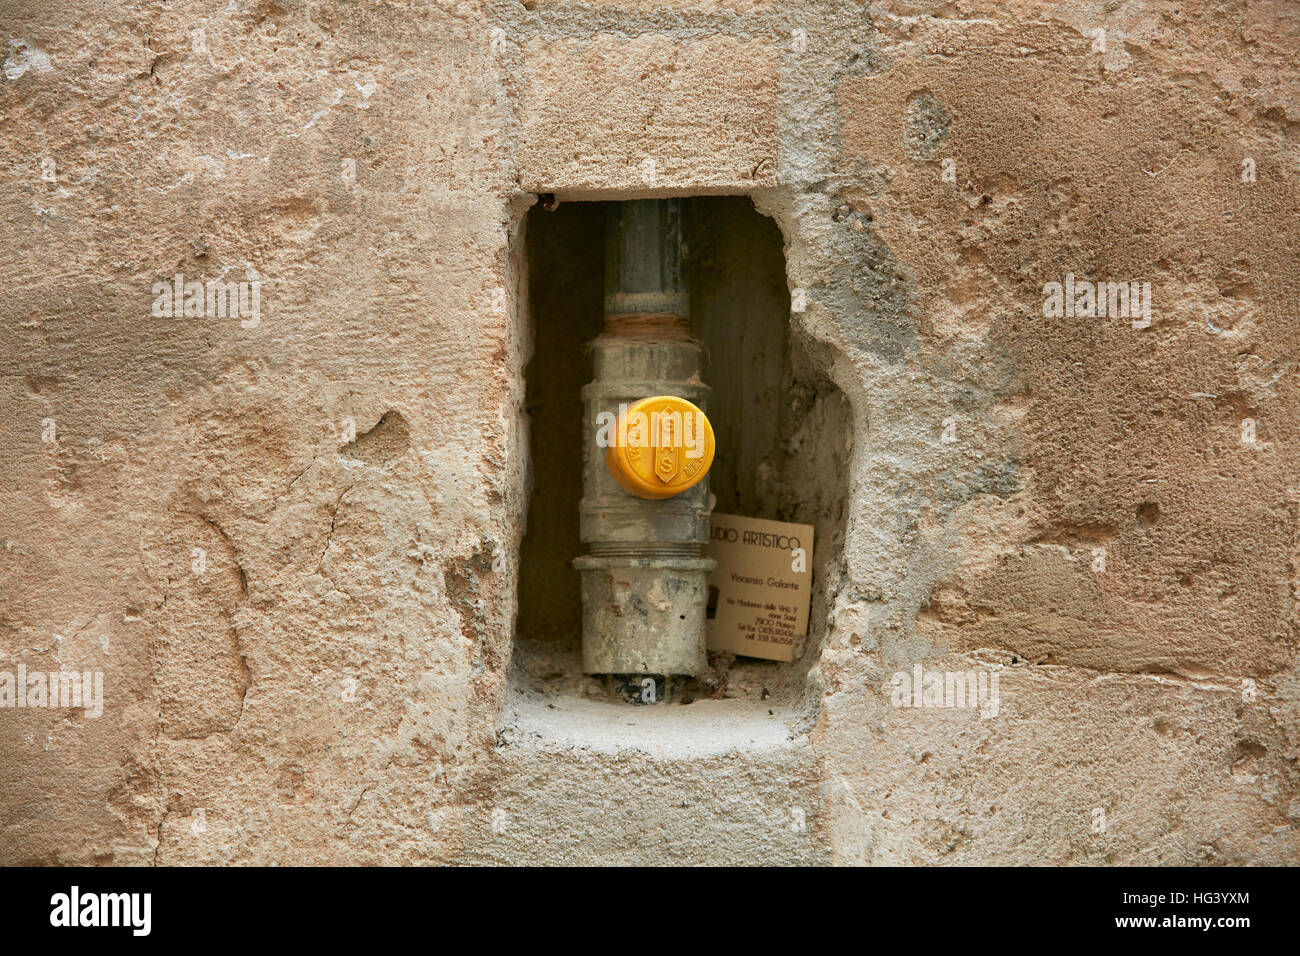 Matera, Italy. Close up of a water meter in a wall niche. - Stock Image